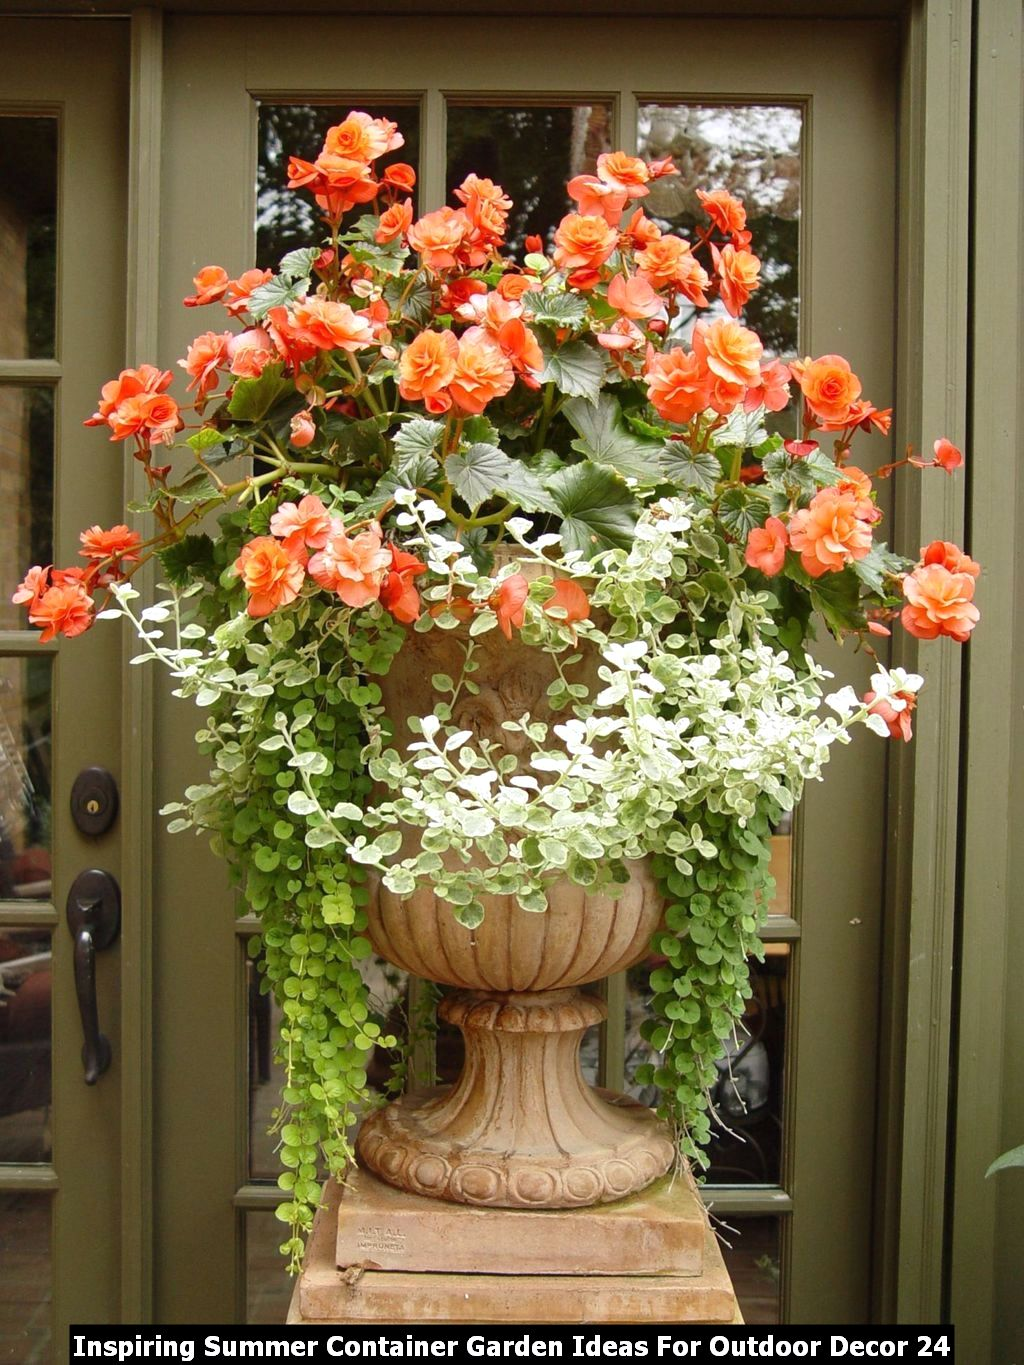 Inspiring Summer Container Garden Ideas For Outdoor Decor 24